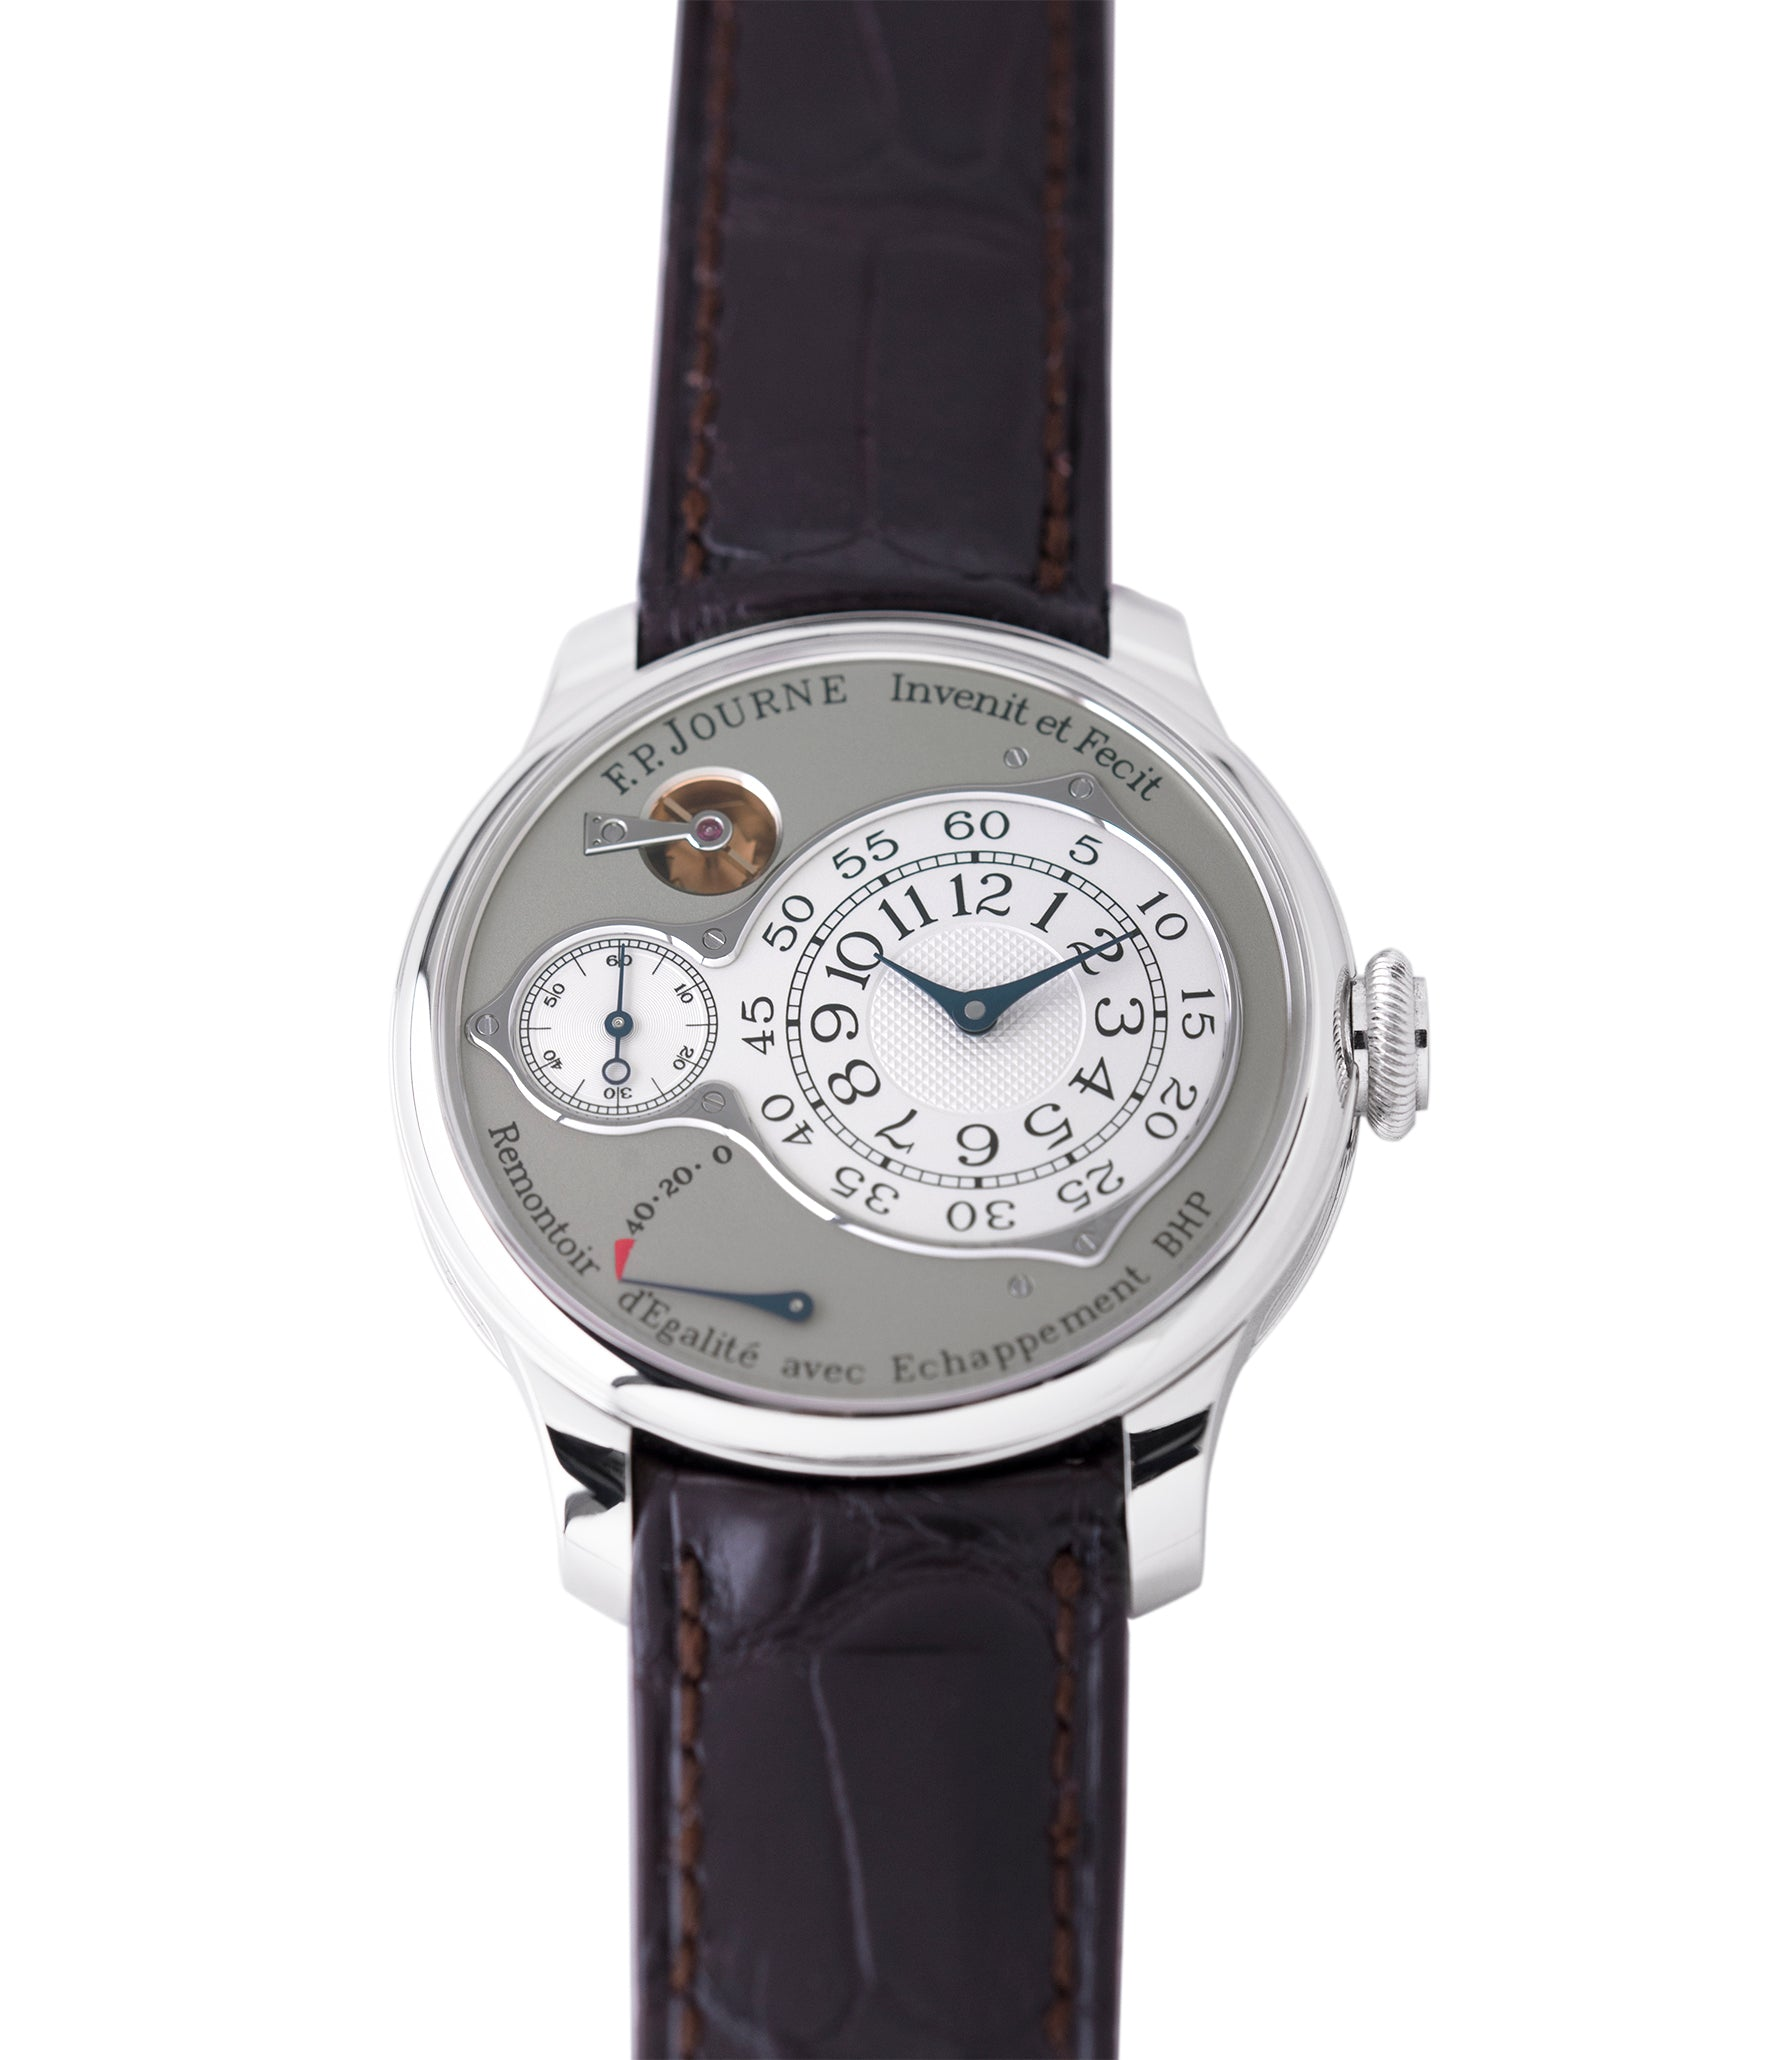 selling preowned F. P. Journe Chronometre Optimum platinum rare watch for sale online at A Collected Man London approved retailer of independent watchmakers